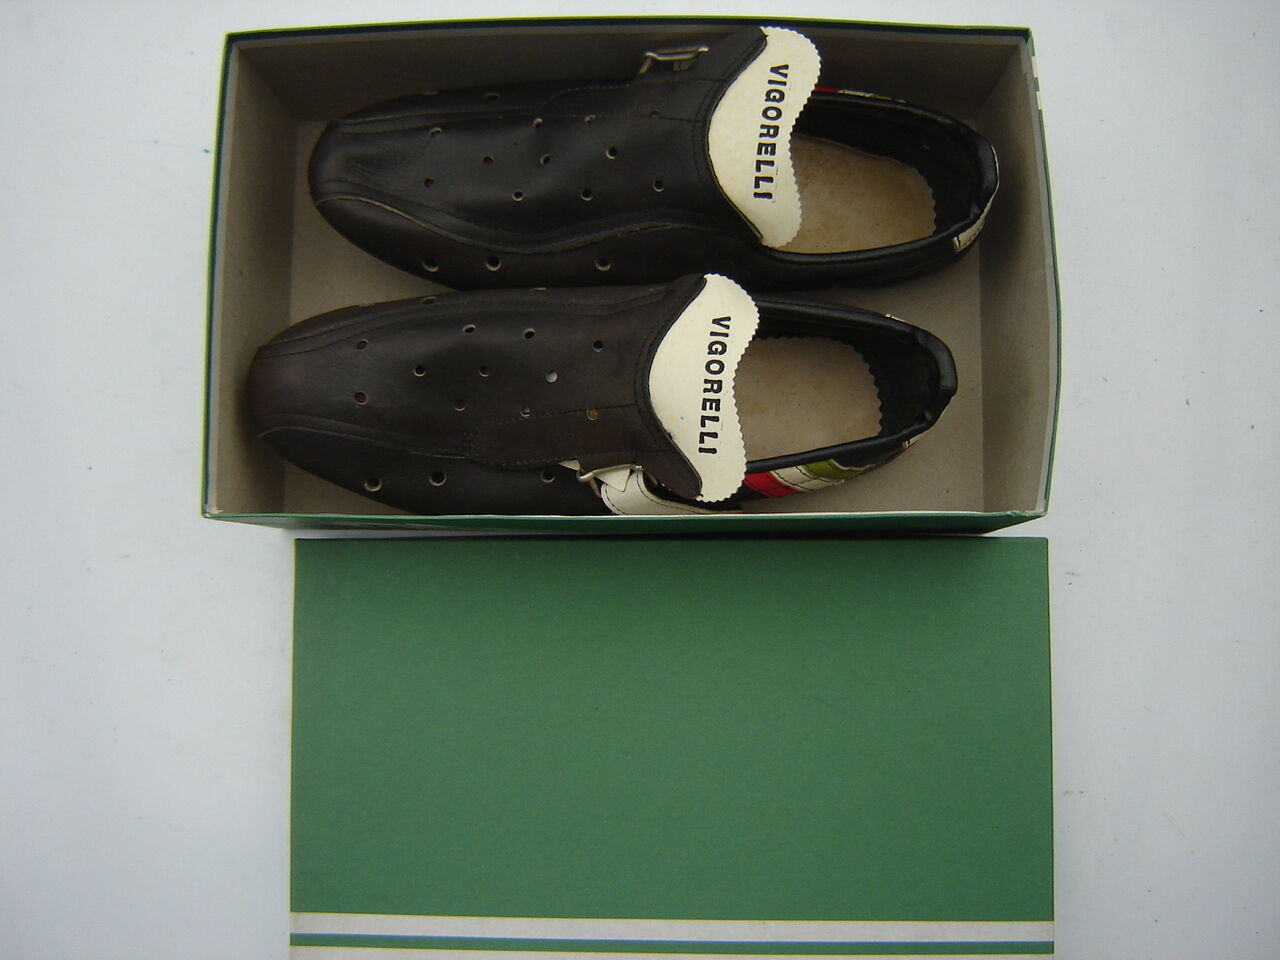 VIGORELLI VINTAGE LEATHER BICYCLE chaussures Taille 40 NOS - NIB